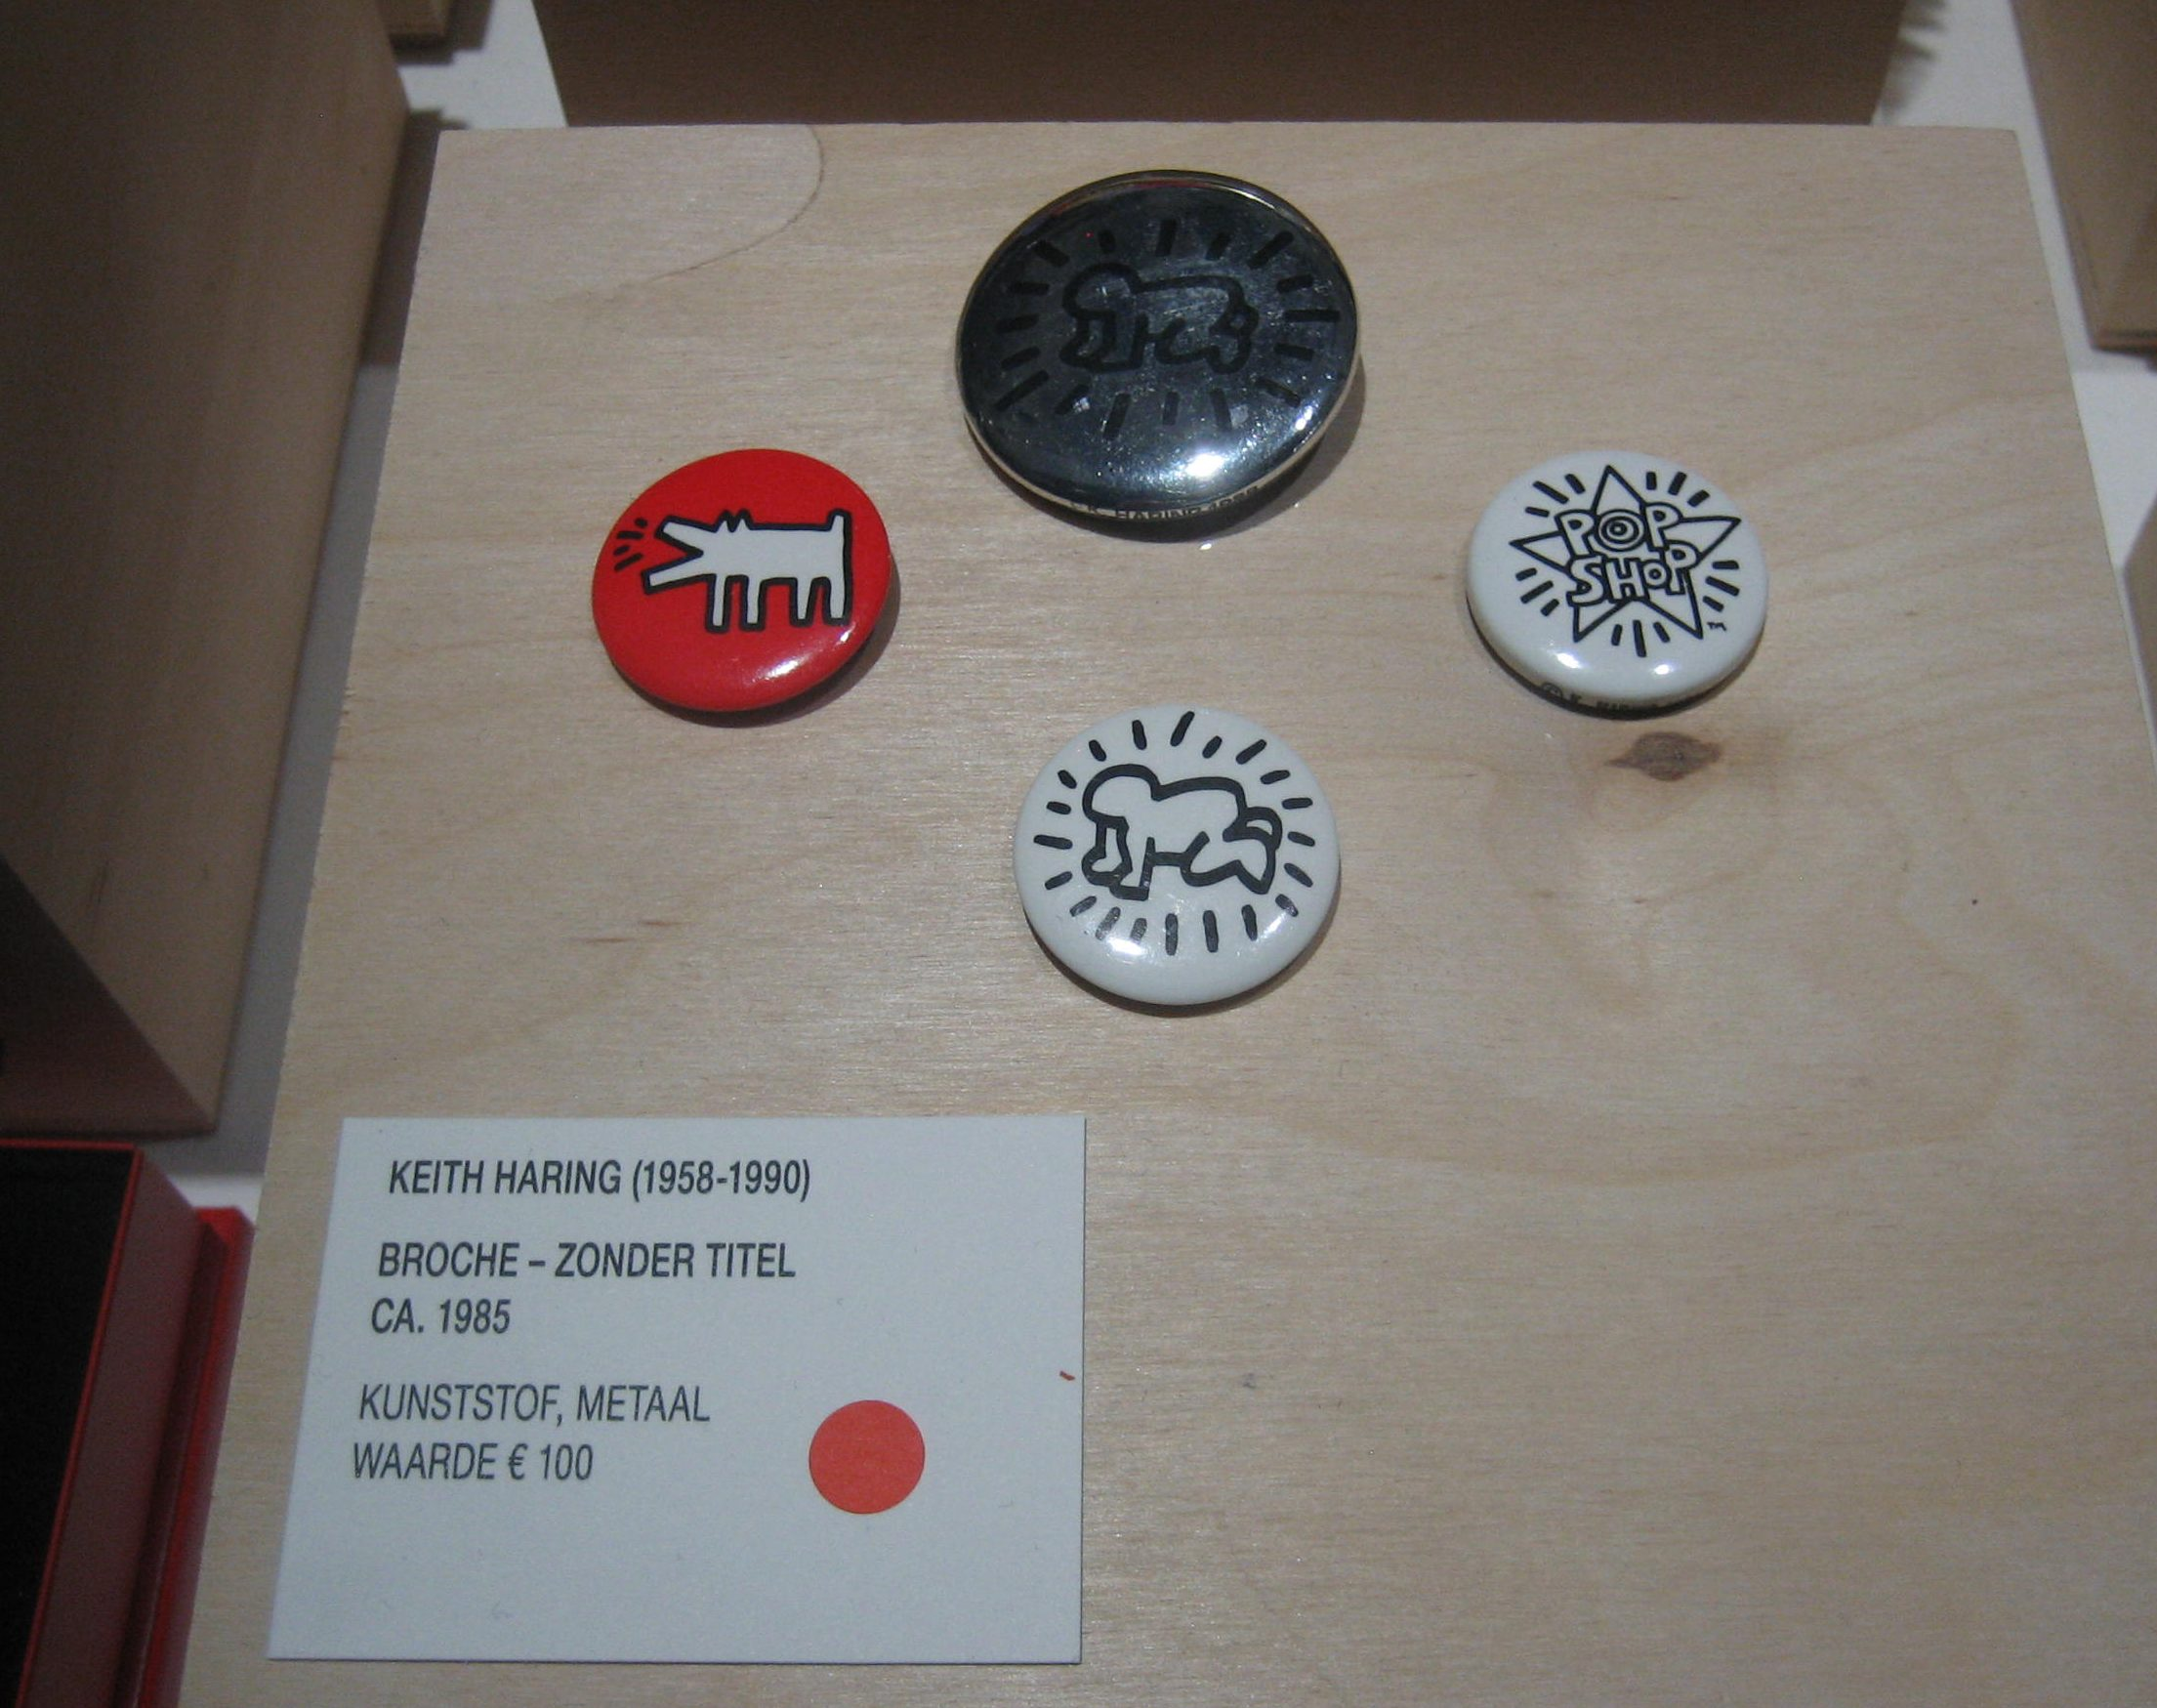 Keith Haring, broches, circa 1985. Styledrive, SMS, november 2017. Foto Esther Doornbusch, CC BY 4.0